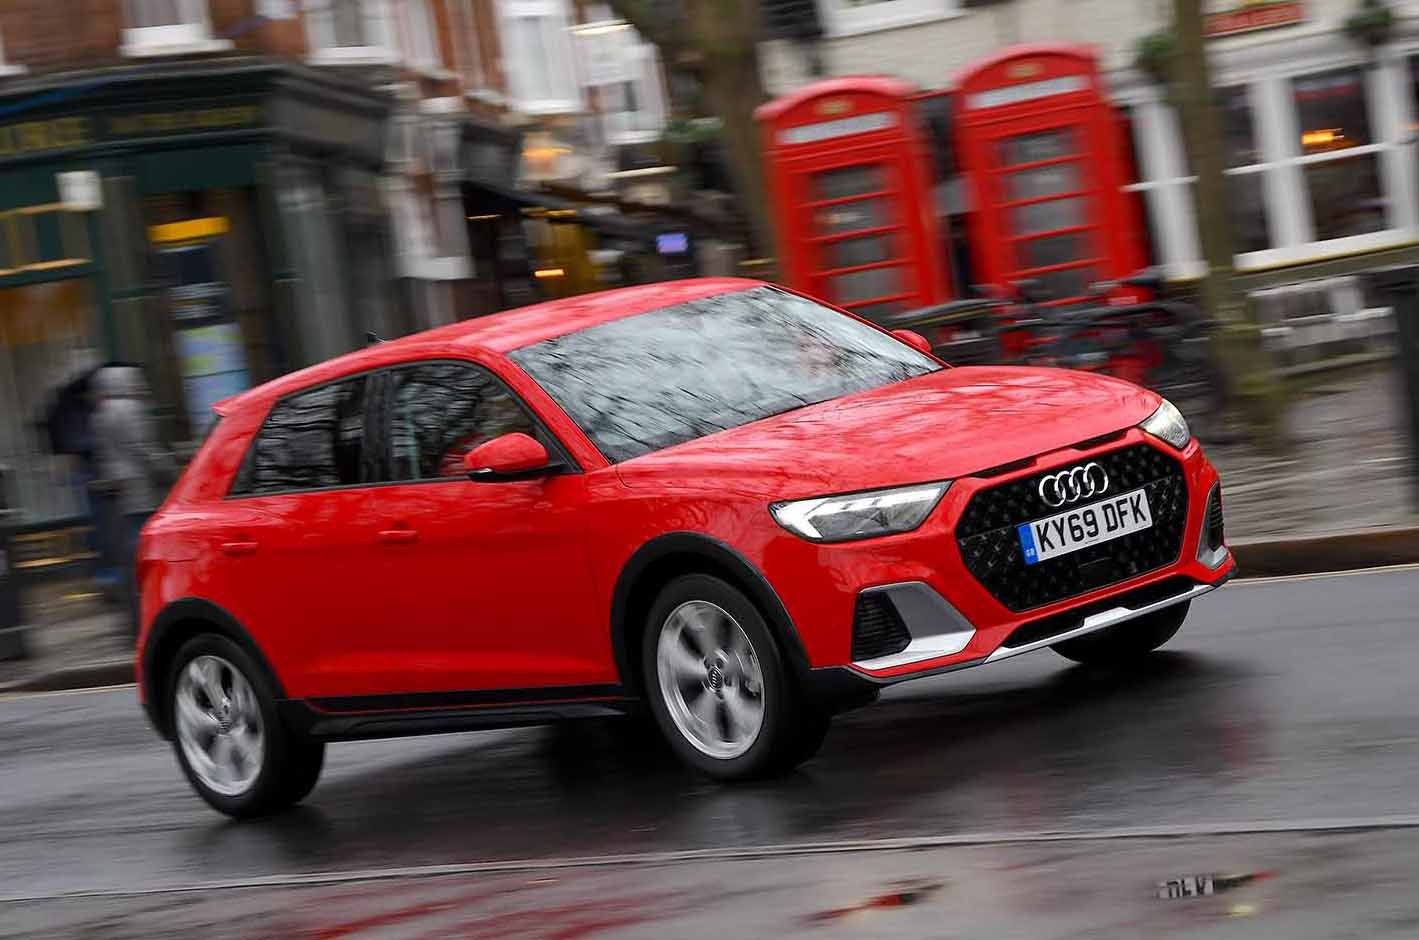 Audi A1 Citycarver front - red